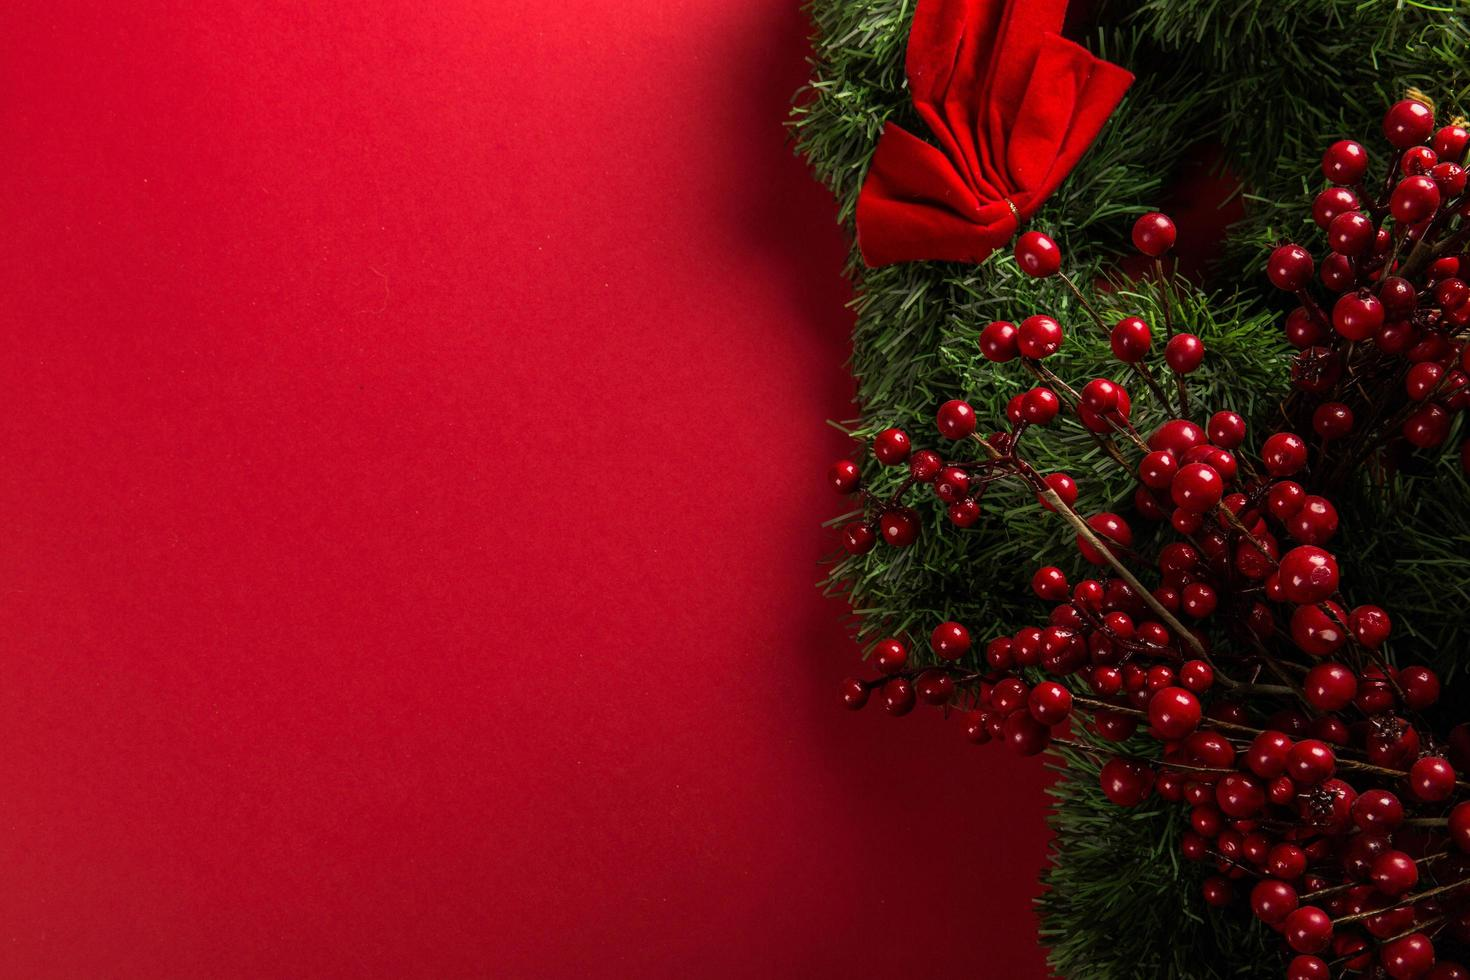 Red and green holiday decorations photo